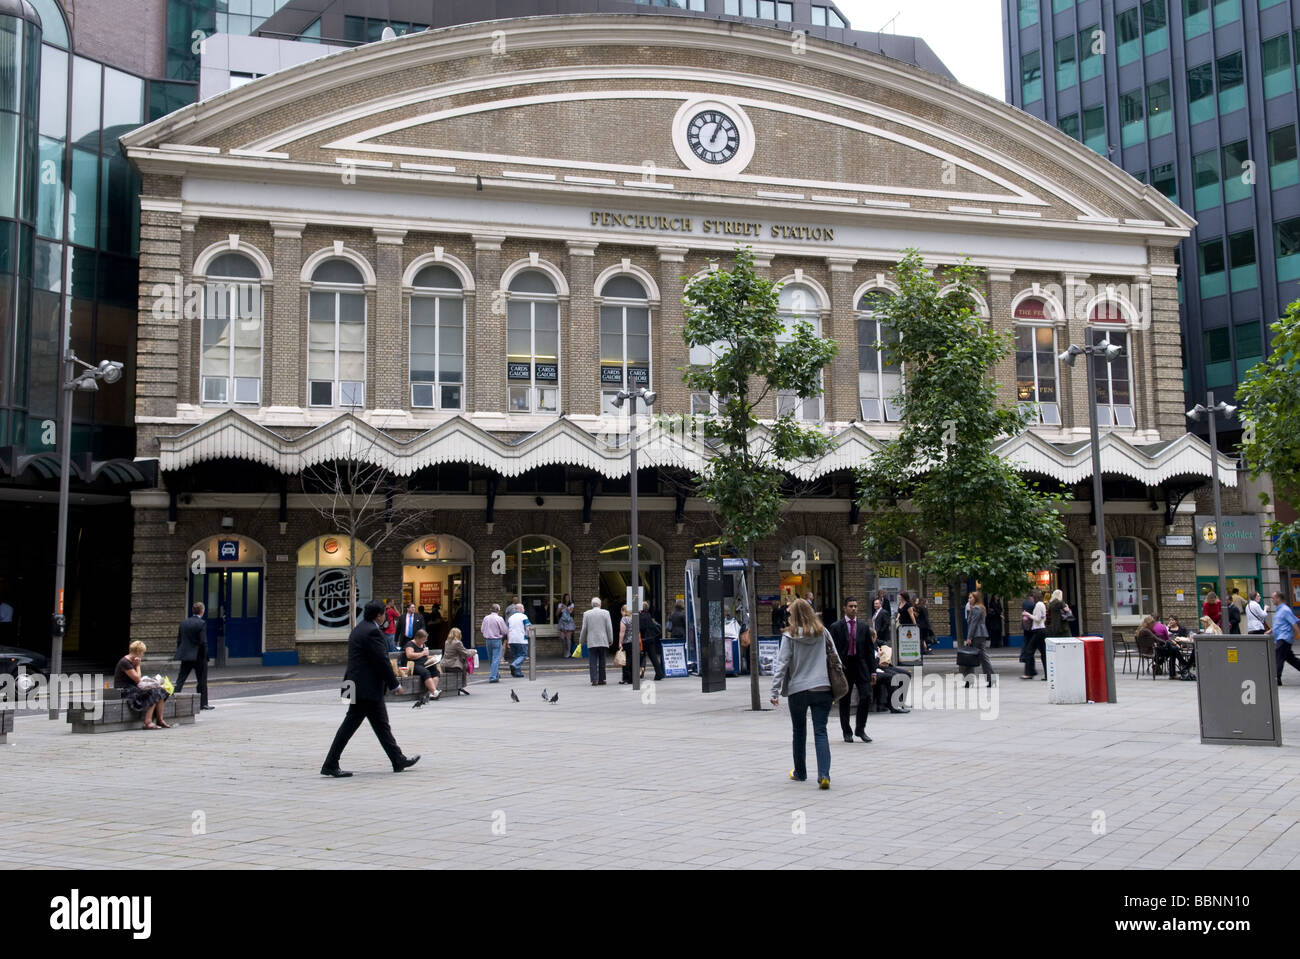 geography / travel, Great Britain, London, Fenchurch Street Station, exterior view, Additional-Rights-Clearance - Stock Image